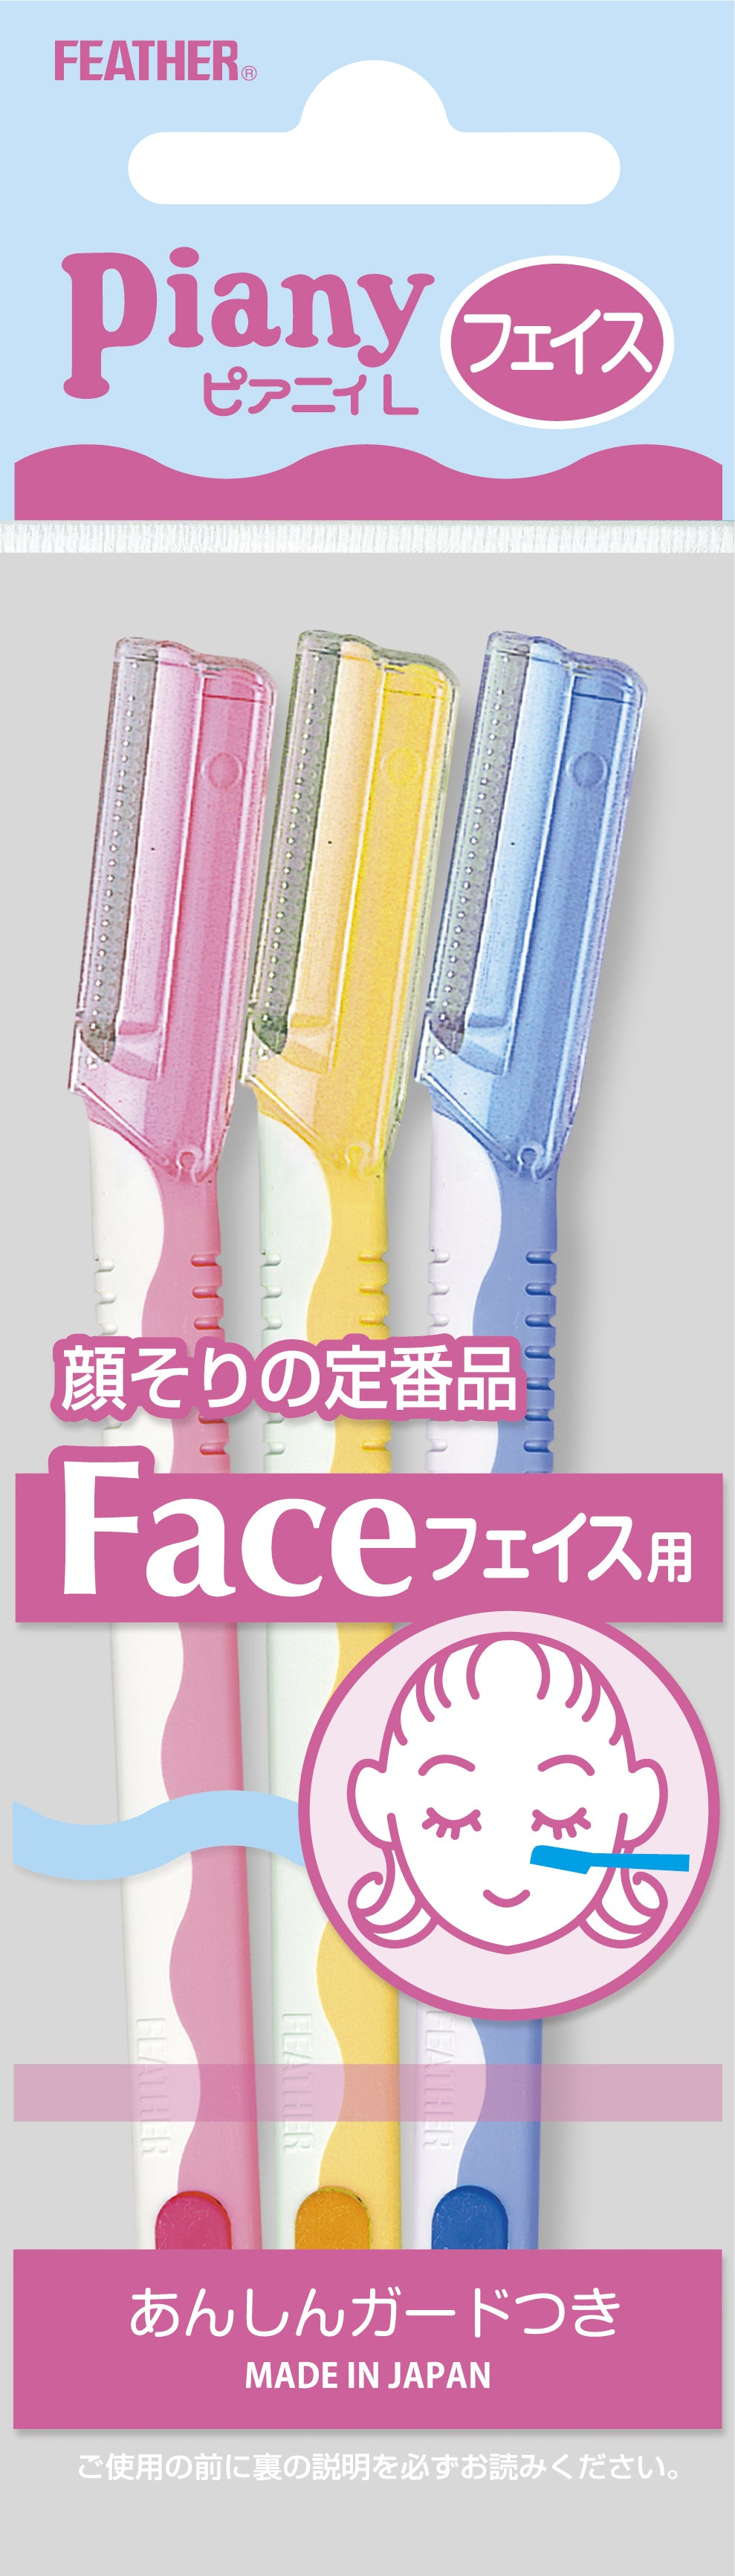 Feather Piany For FACE With Guard 3pcs (PI-L)